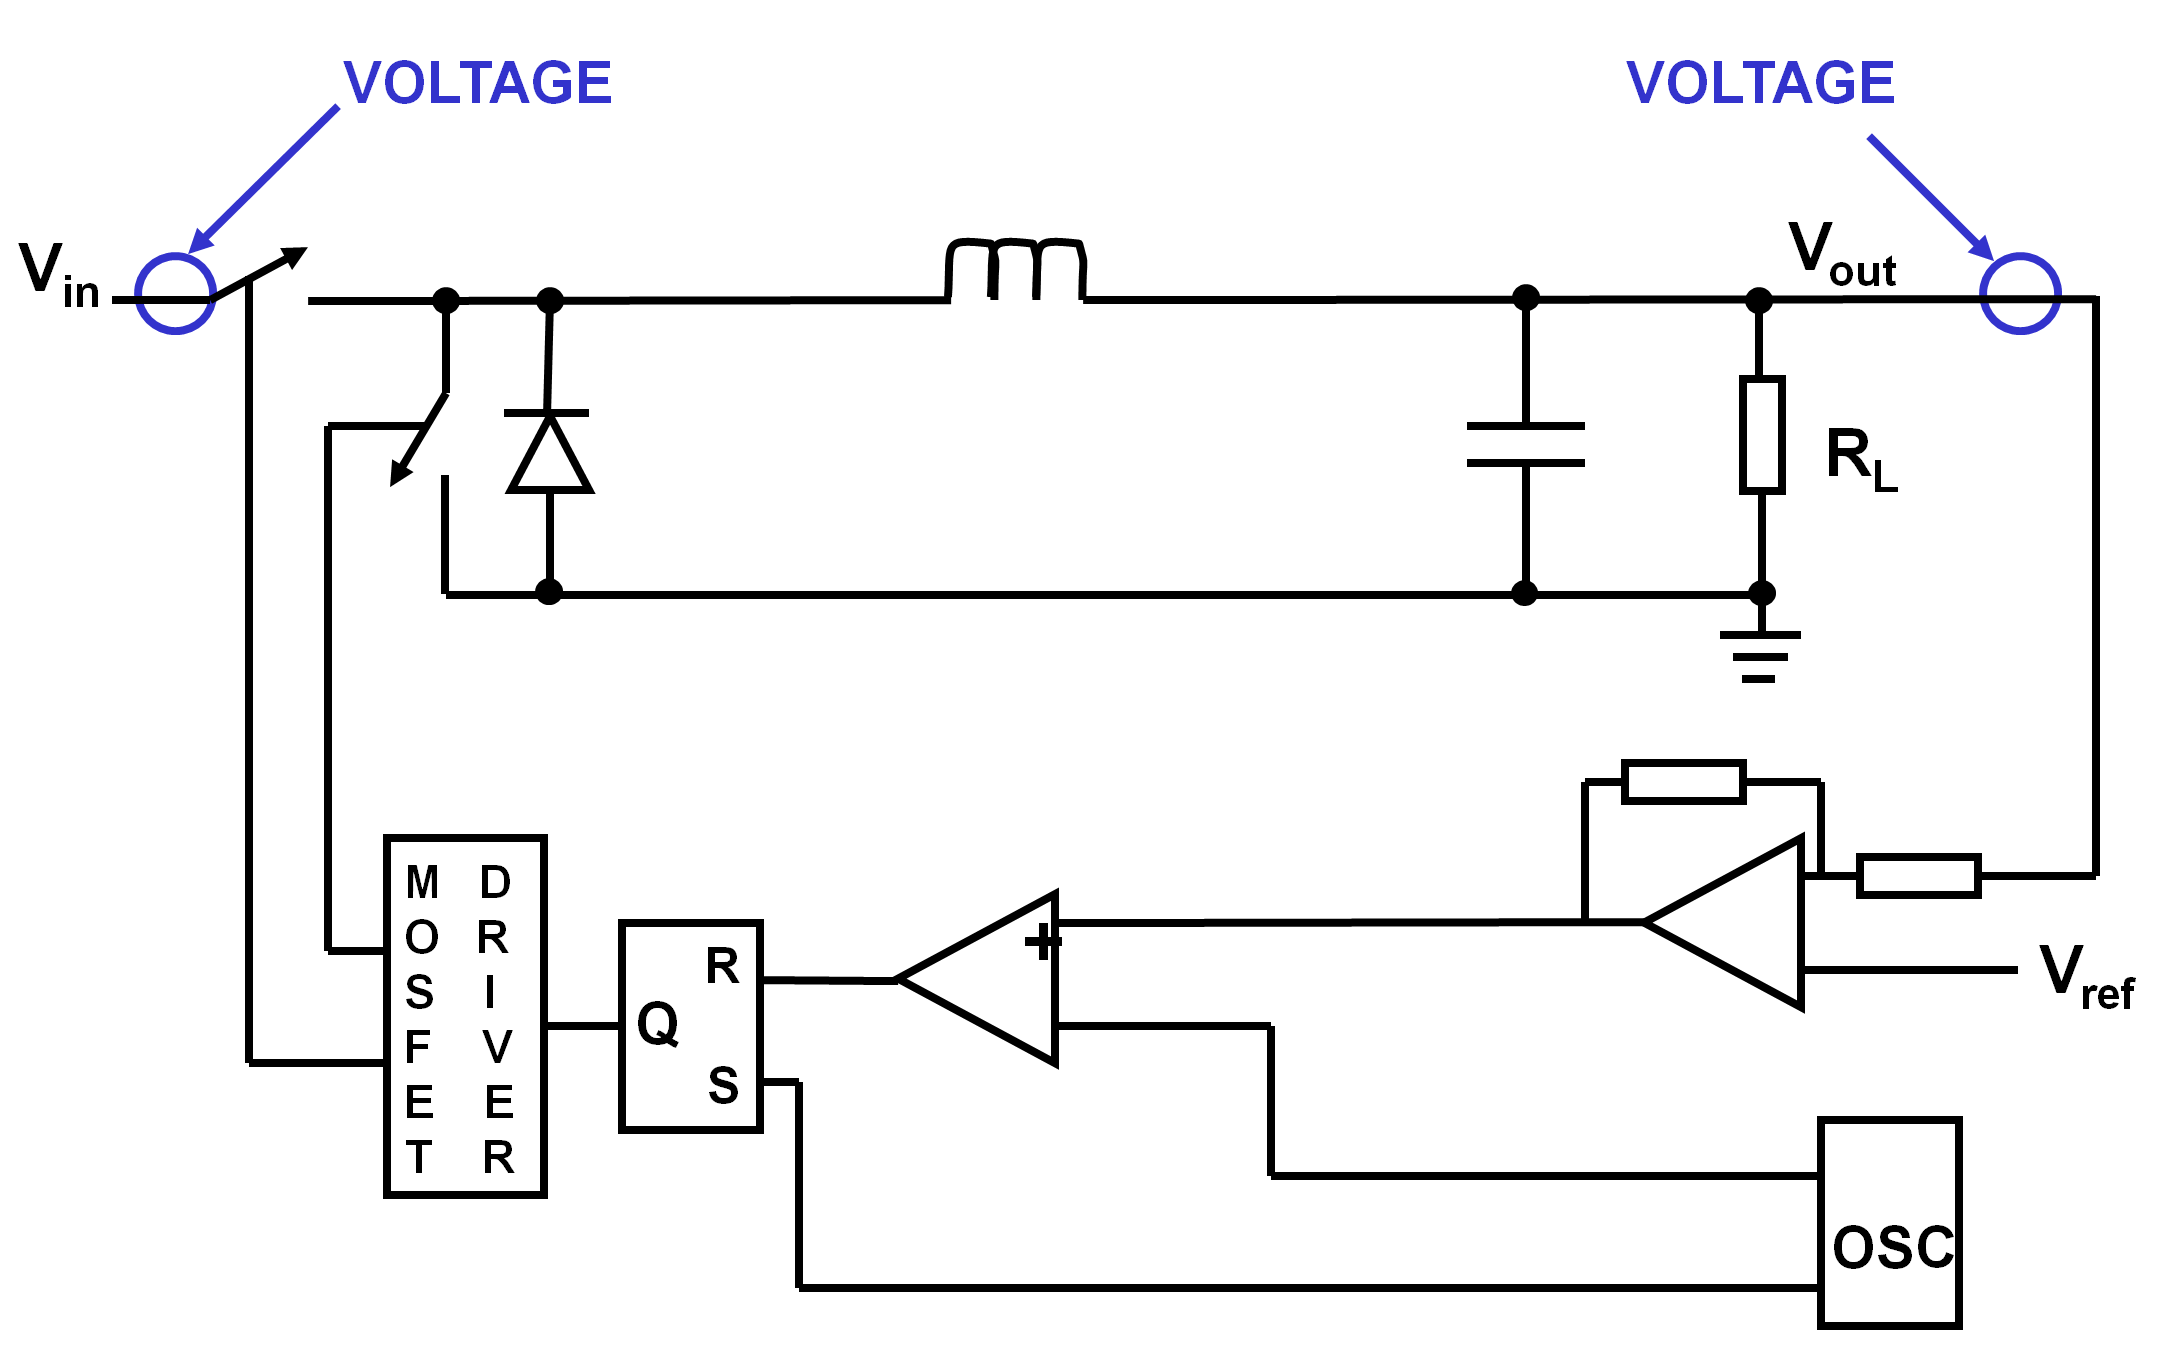 adc-read-voltage.png